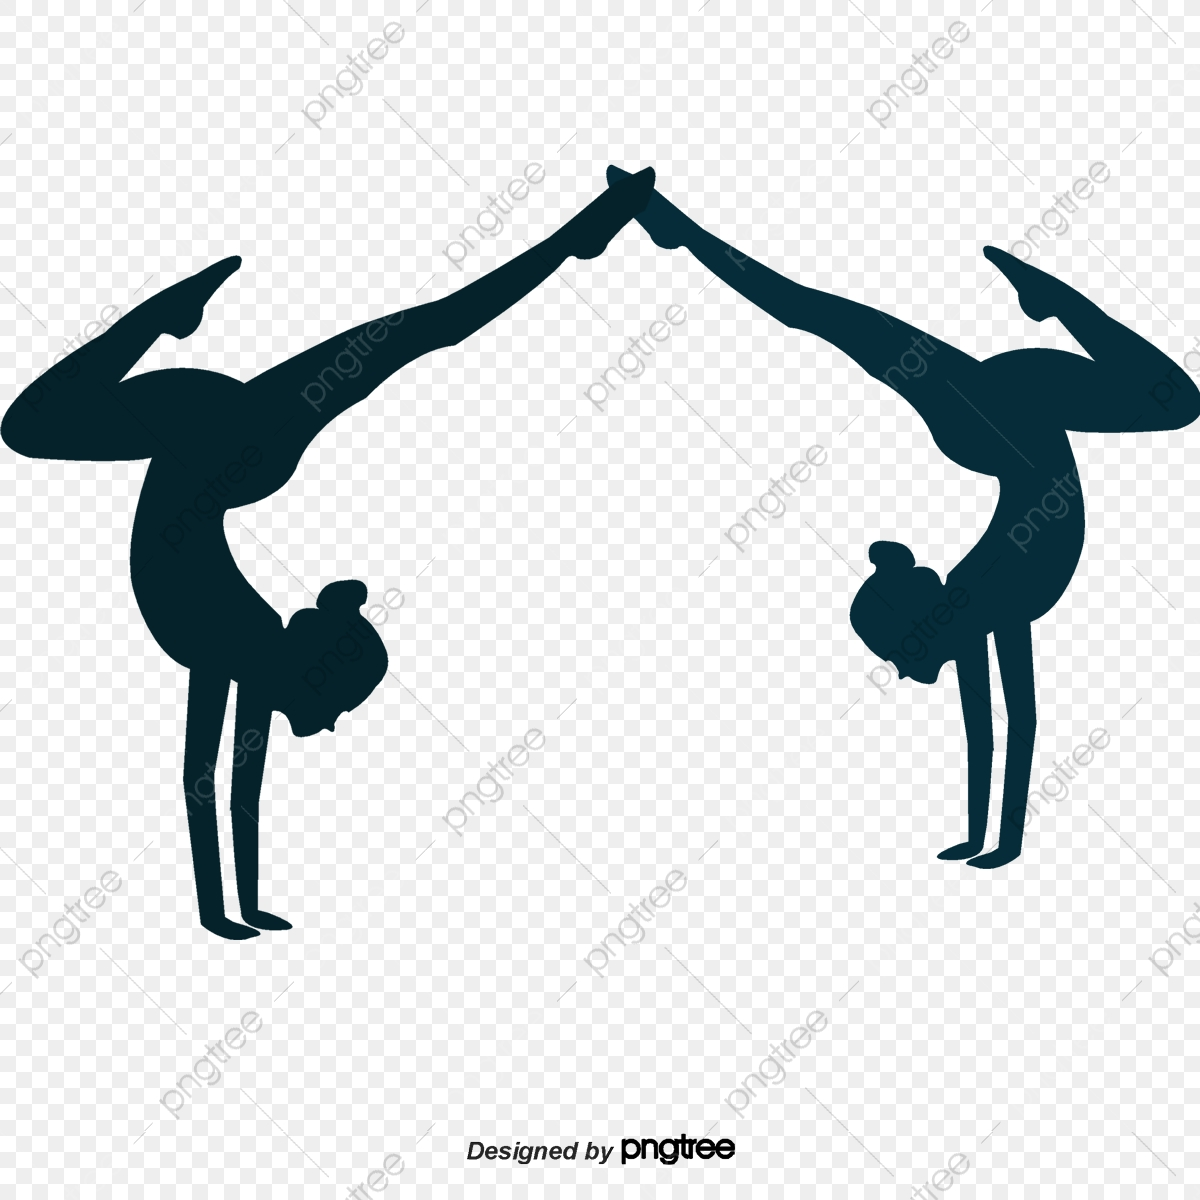 Cartoon Silhouettes Of Two Women Practicing Yoga Character Graceful Element Png Transparent Clipart Image And Psd File For Free Download